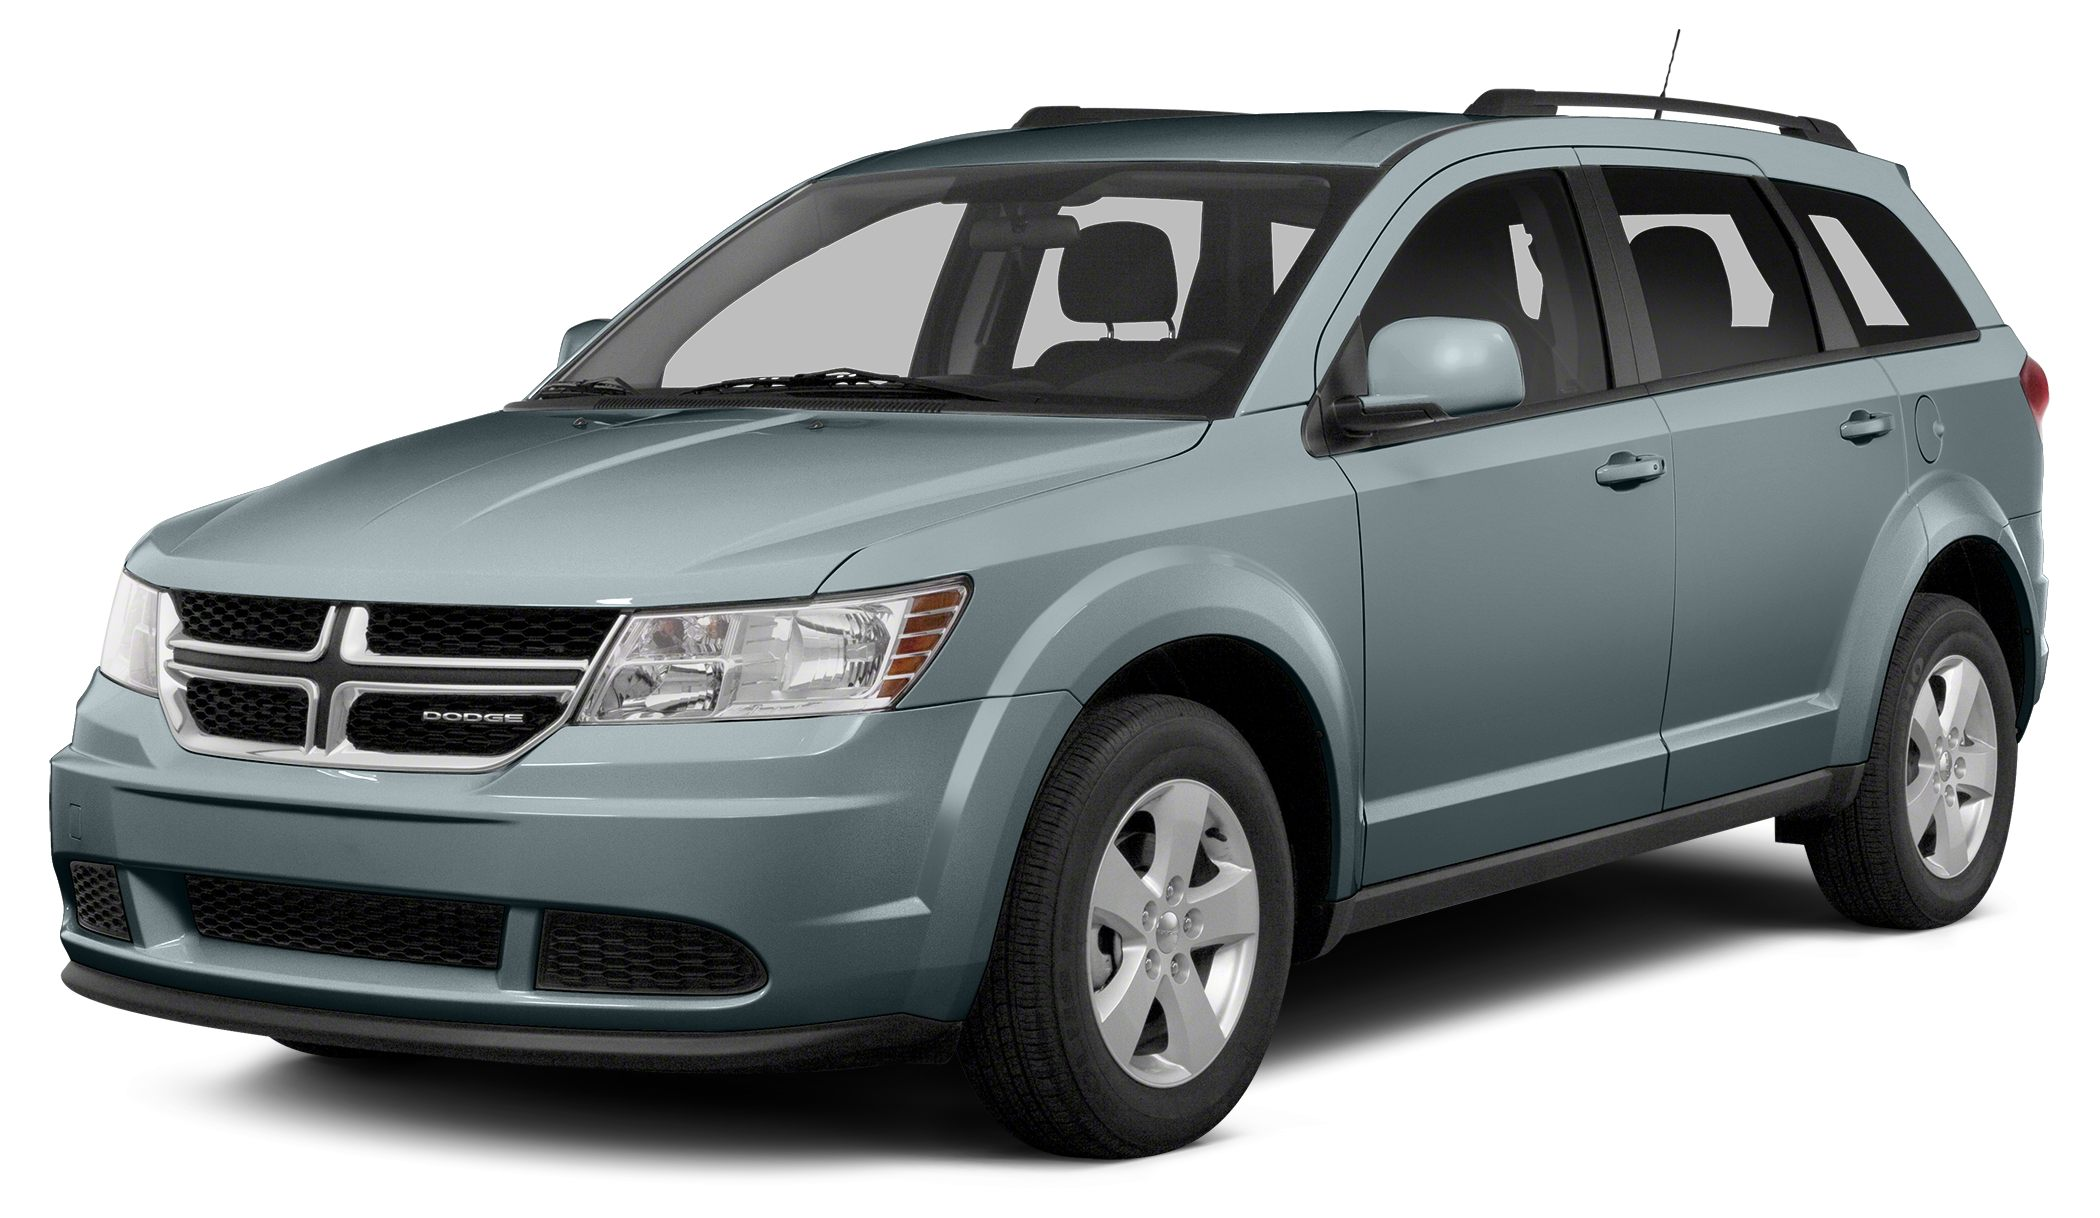 2013 Dodge Journey SXT CARFAX 1-Owner SXT trim EPA 25 MPG Hwy17 MPG City Third Row Seat Alumi